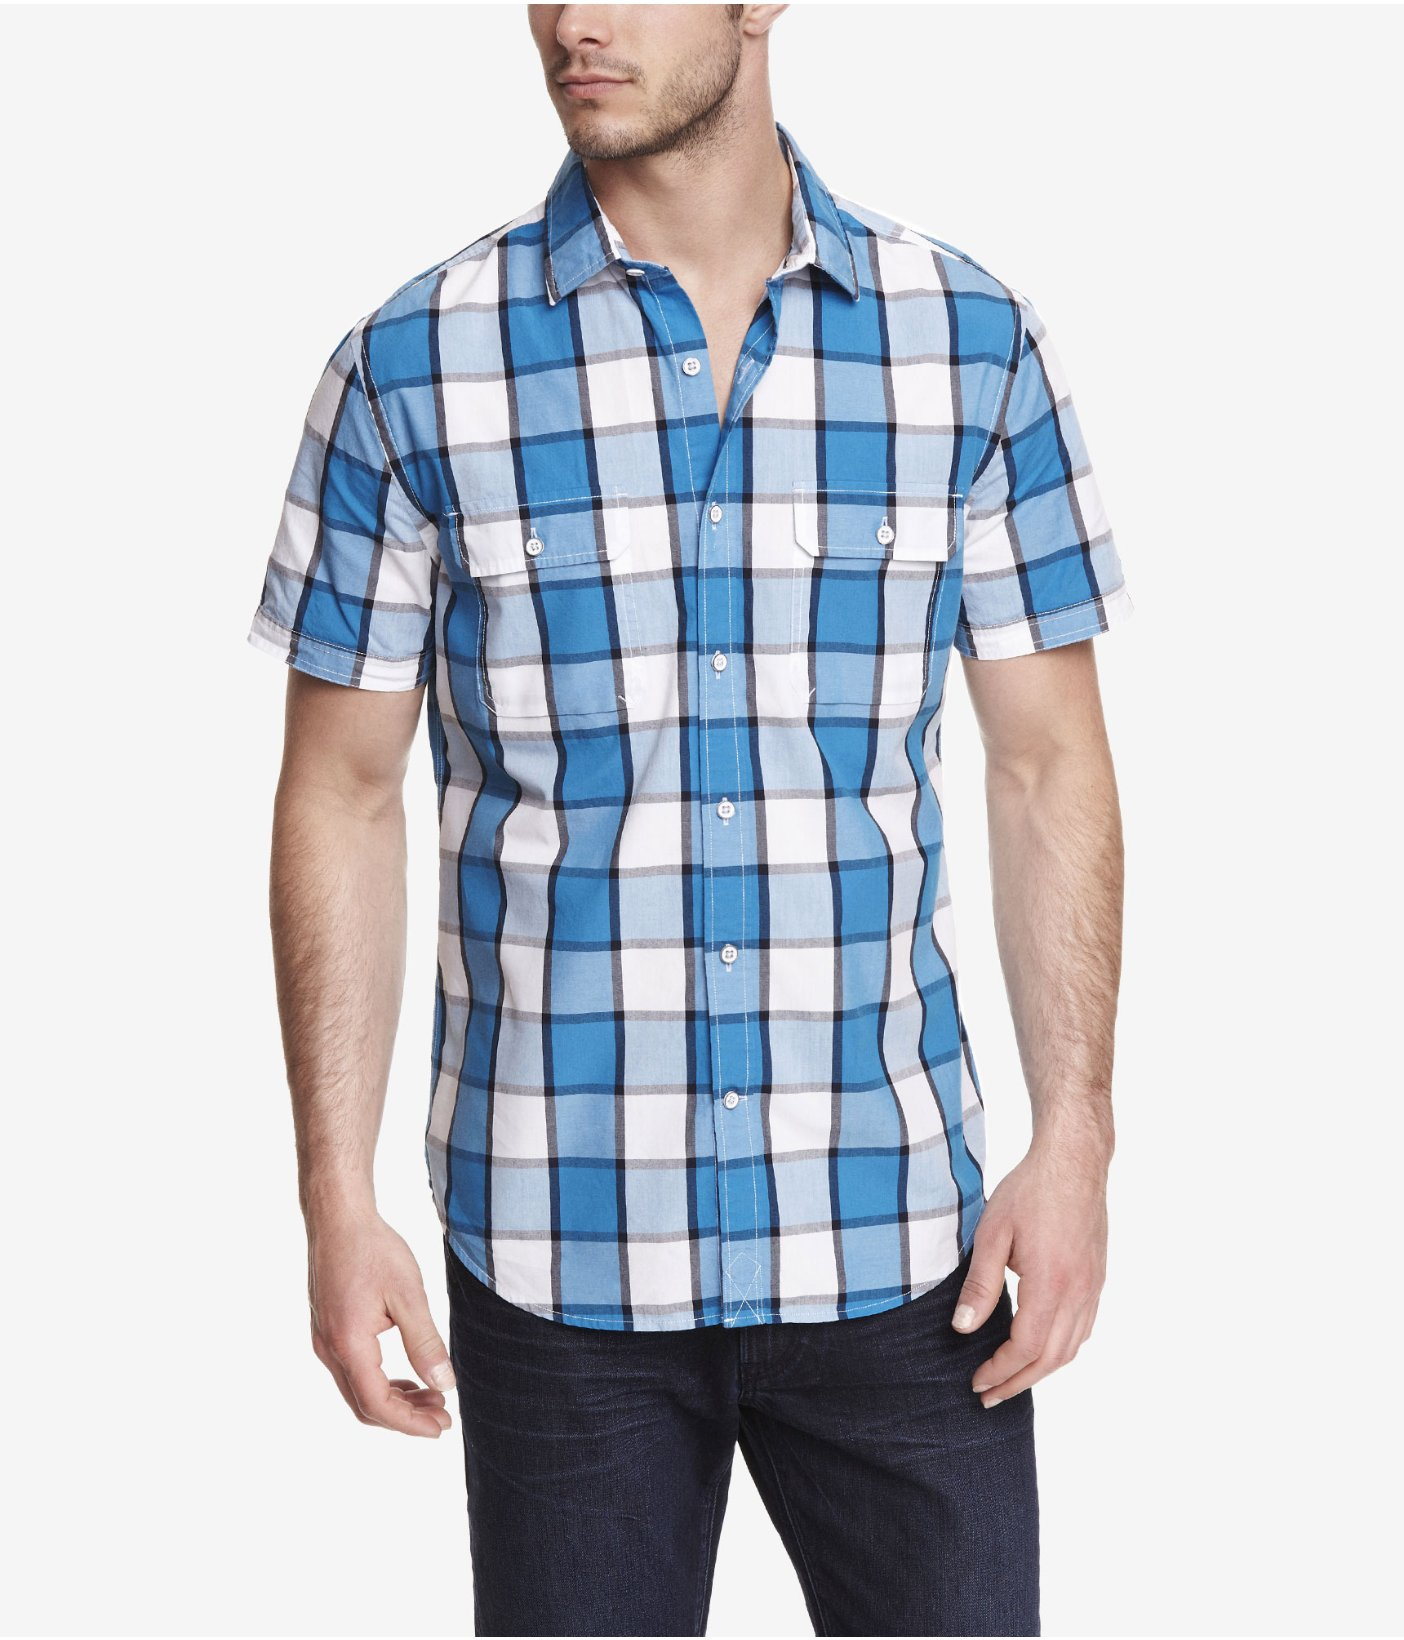 Express fitted short sleeve plaid shirt in blue for men Short sleeve plaid shirts